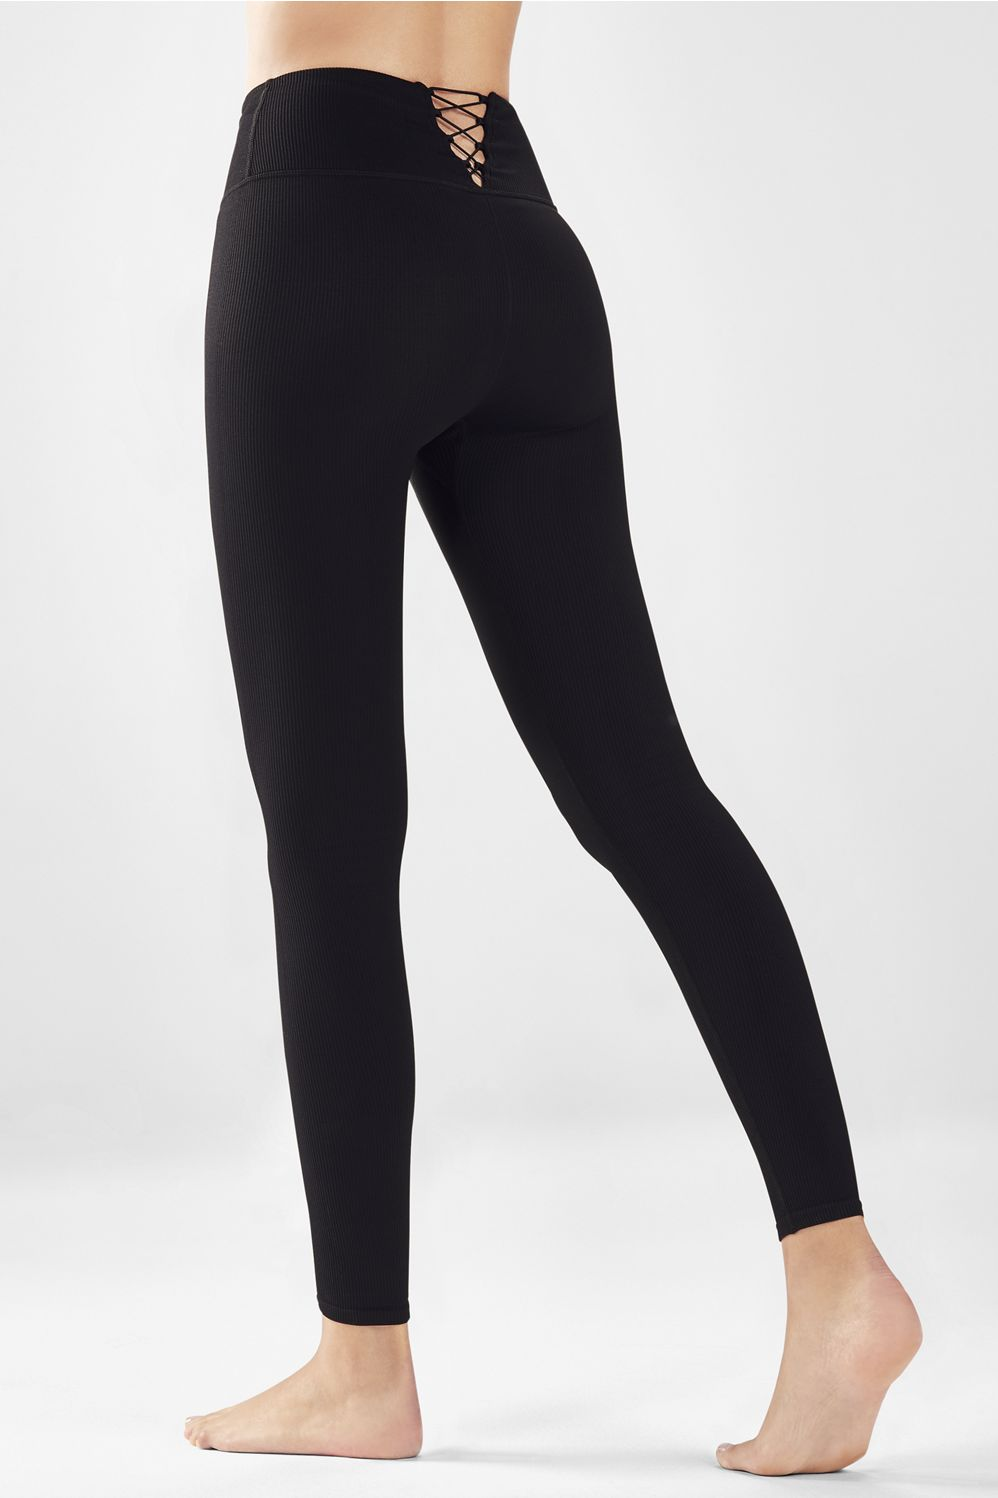 55f84927239b0 Seamless High-Waisted Statement Legging - Fabletics